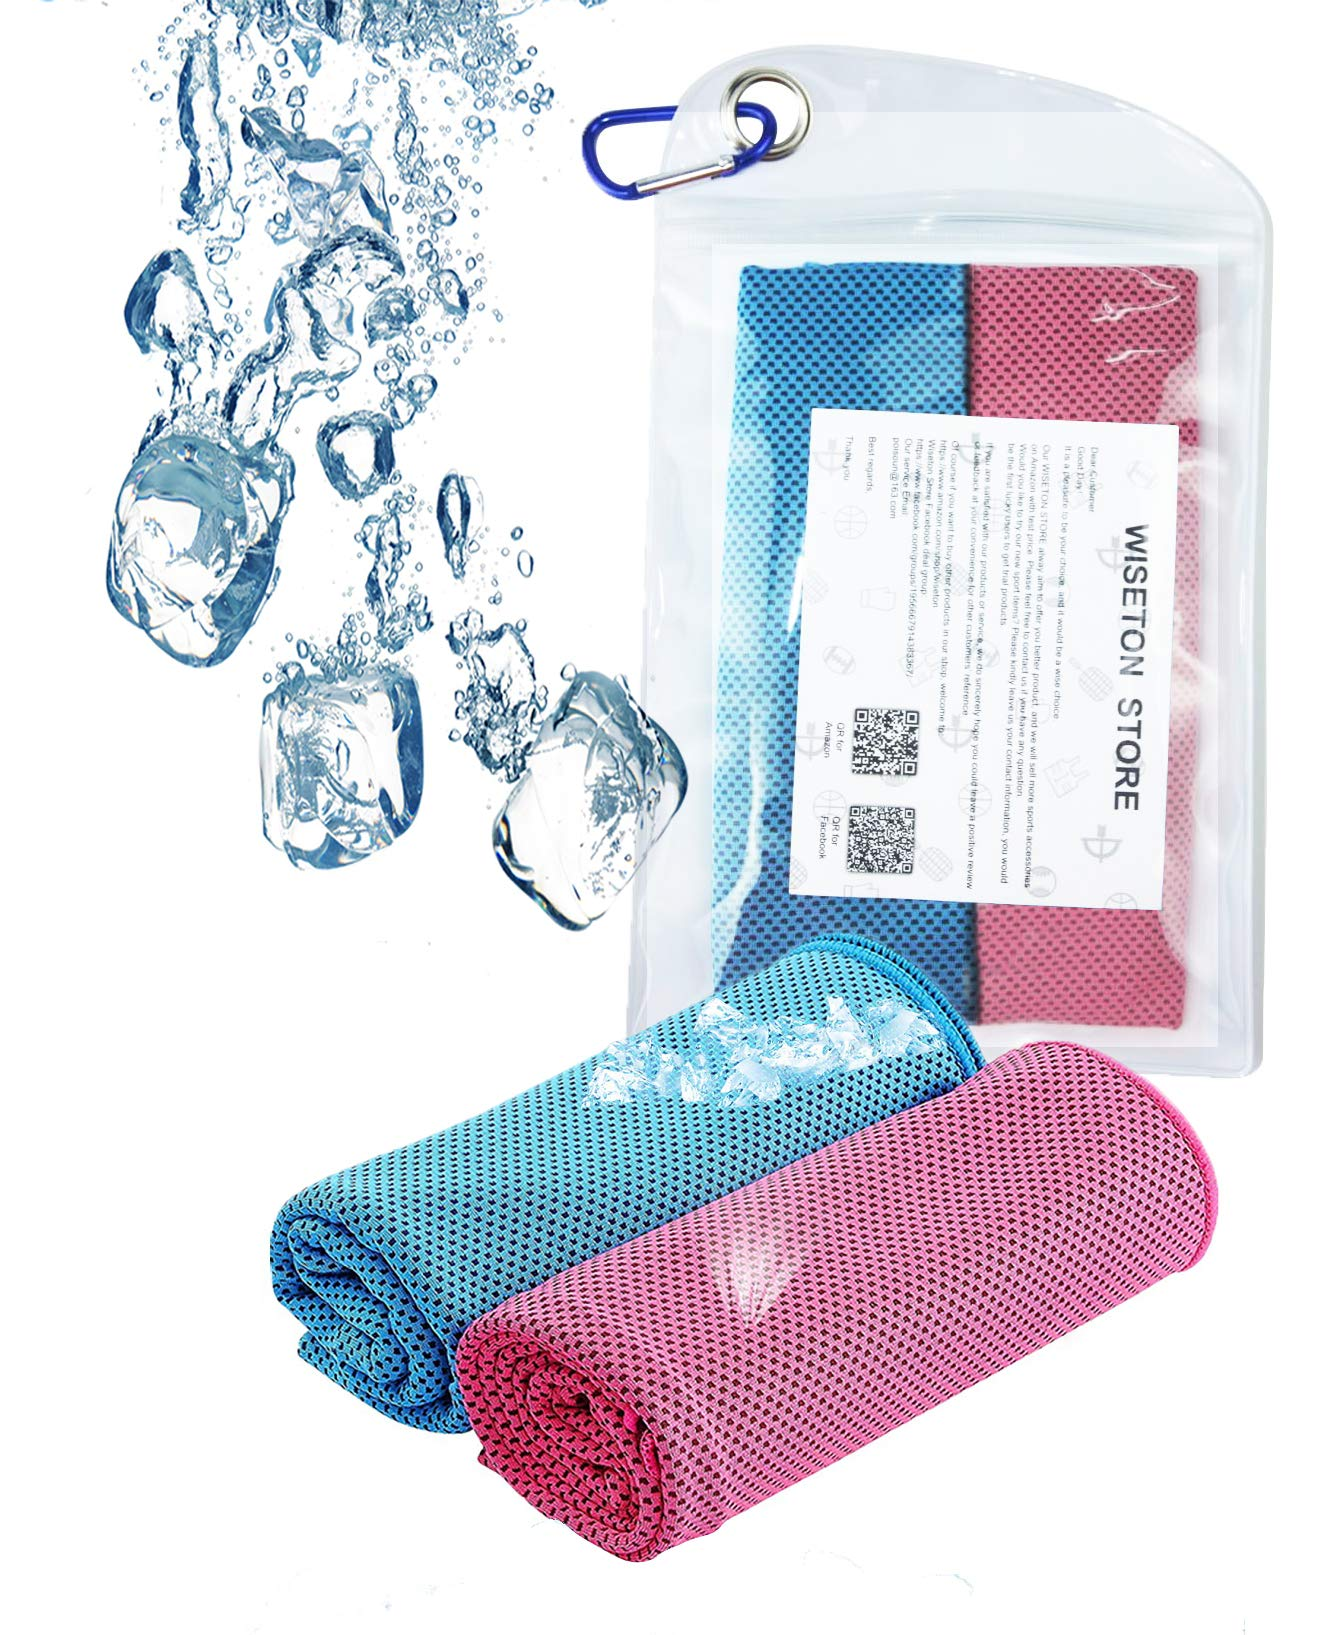 WISETON Cooling Towels,Sports Cooling Towels for Men Women, Instant Relief Breathable Mesh Towels for Golf,Work Out,Fitness,Gym,Yoga,-Set of 2 with a Waterproof Bag and Carabiner